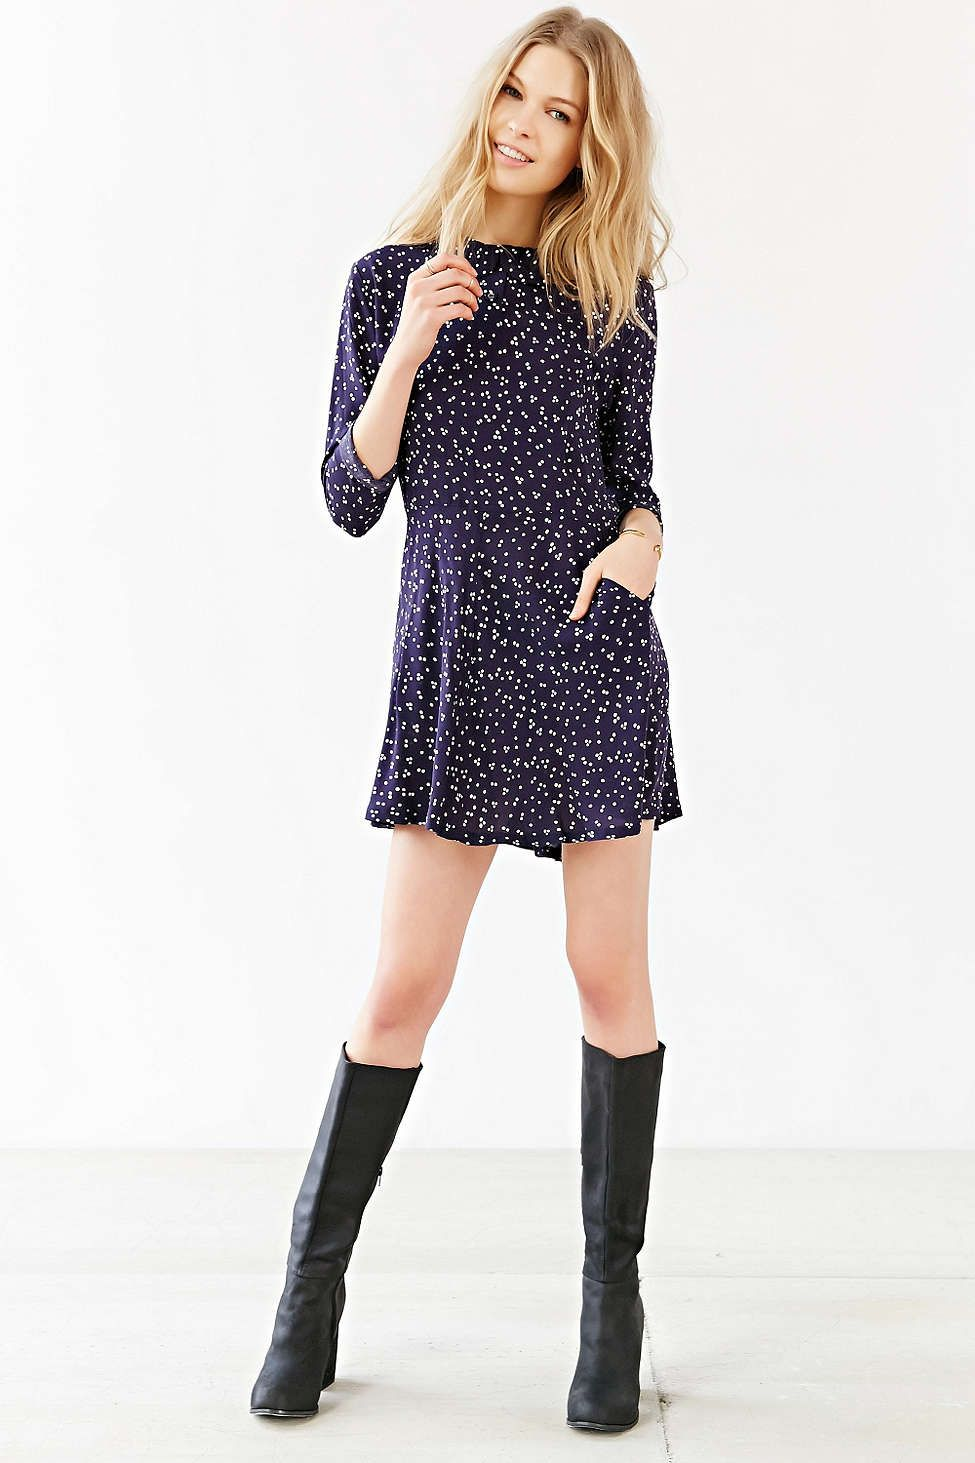 RYDER Midnight Dress - Urban Outfitters